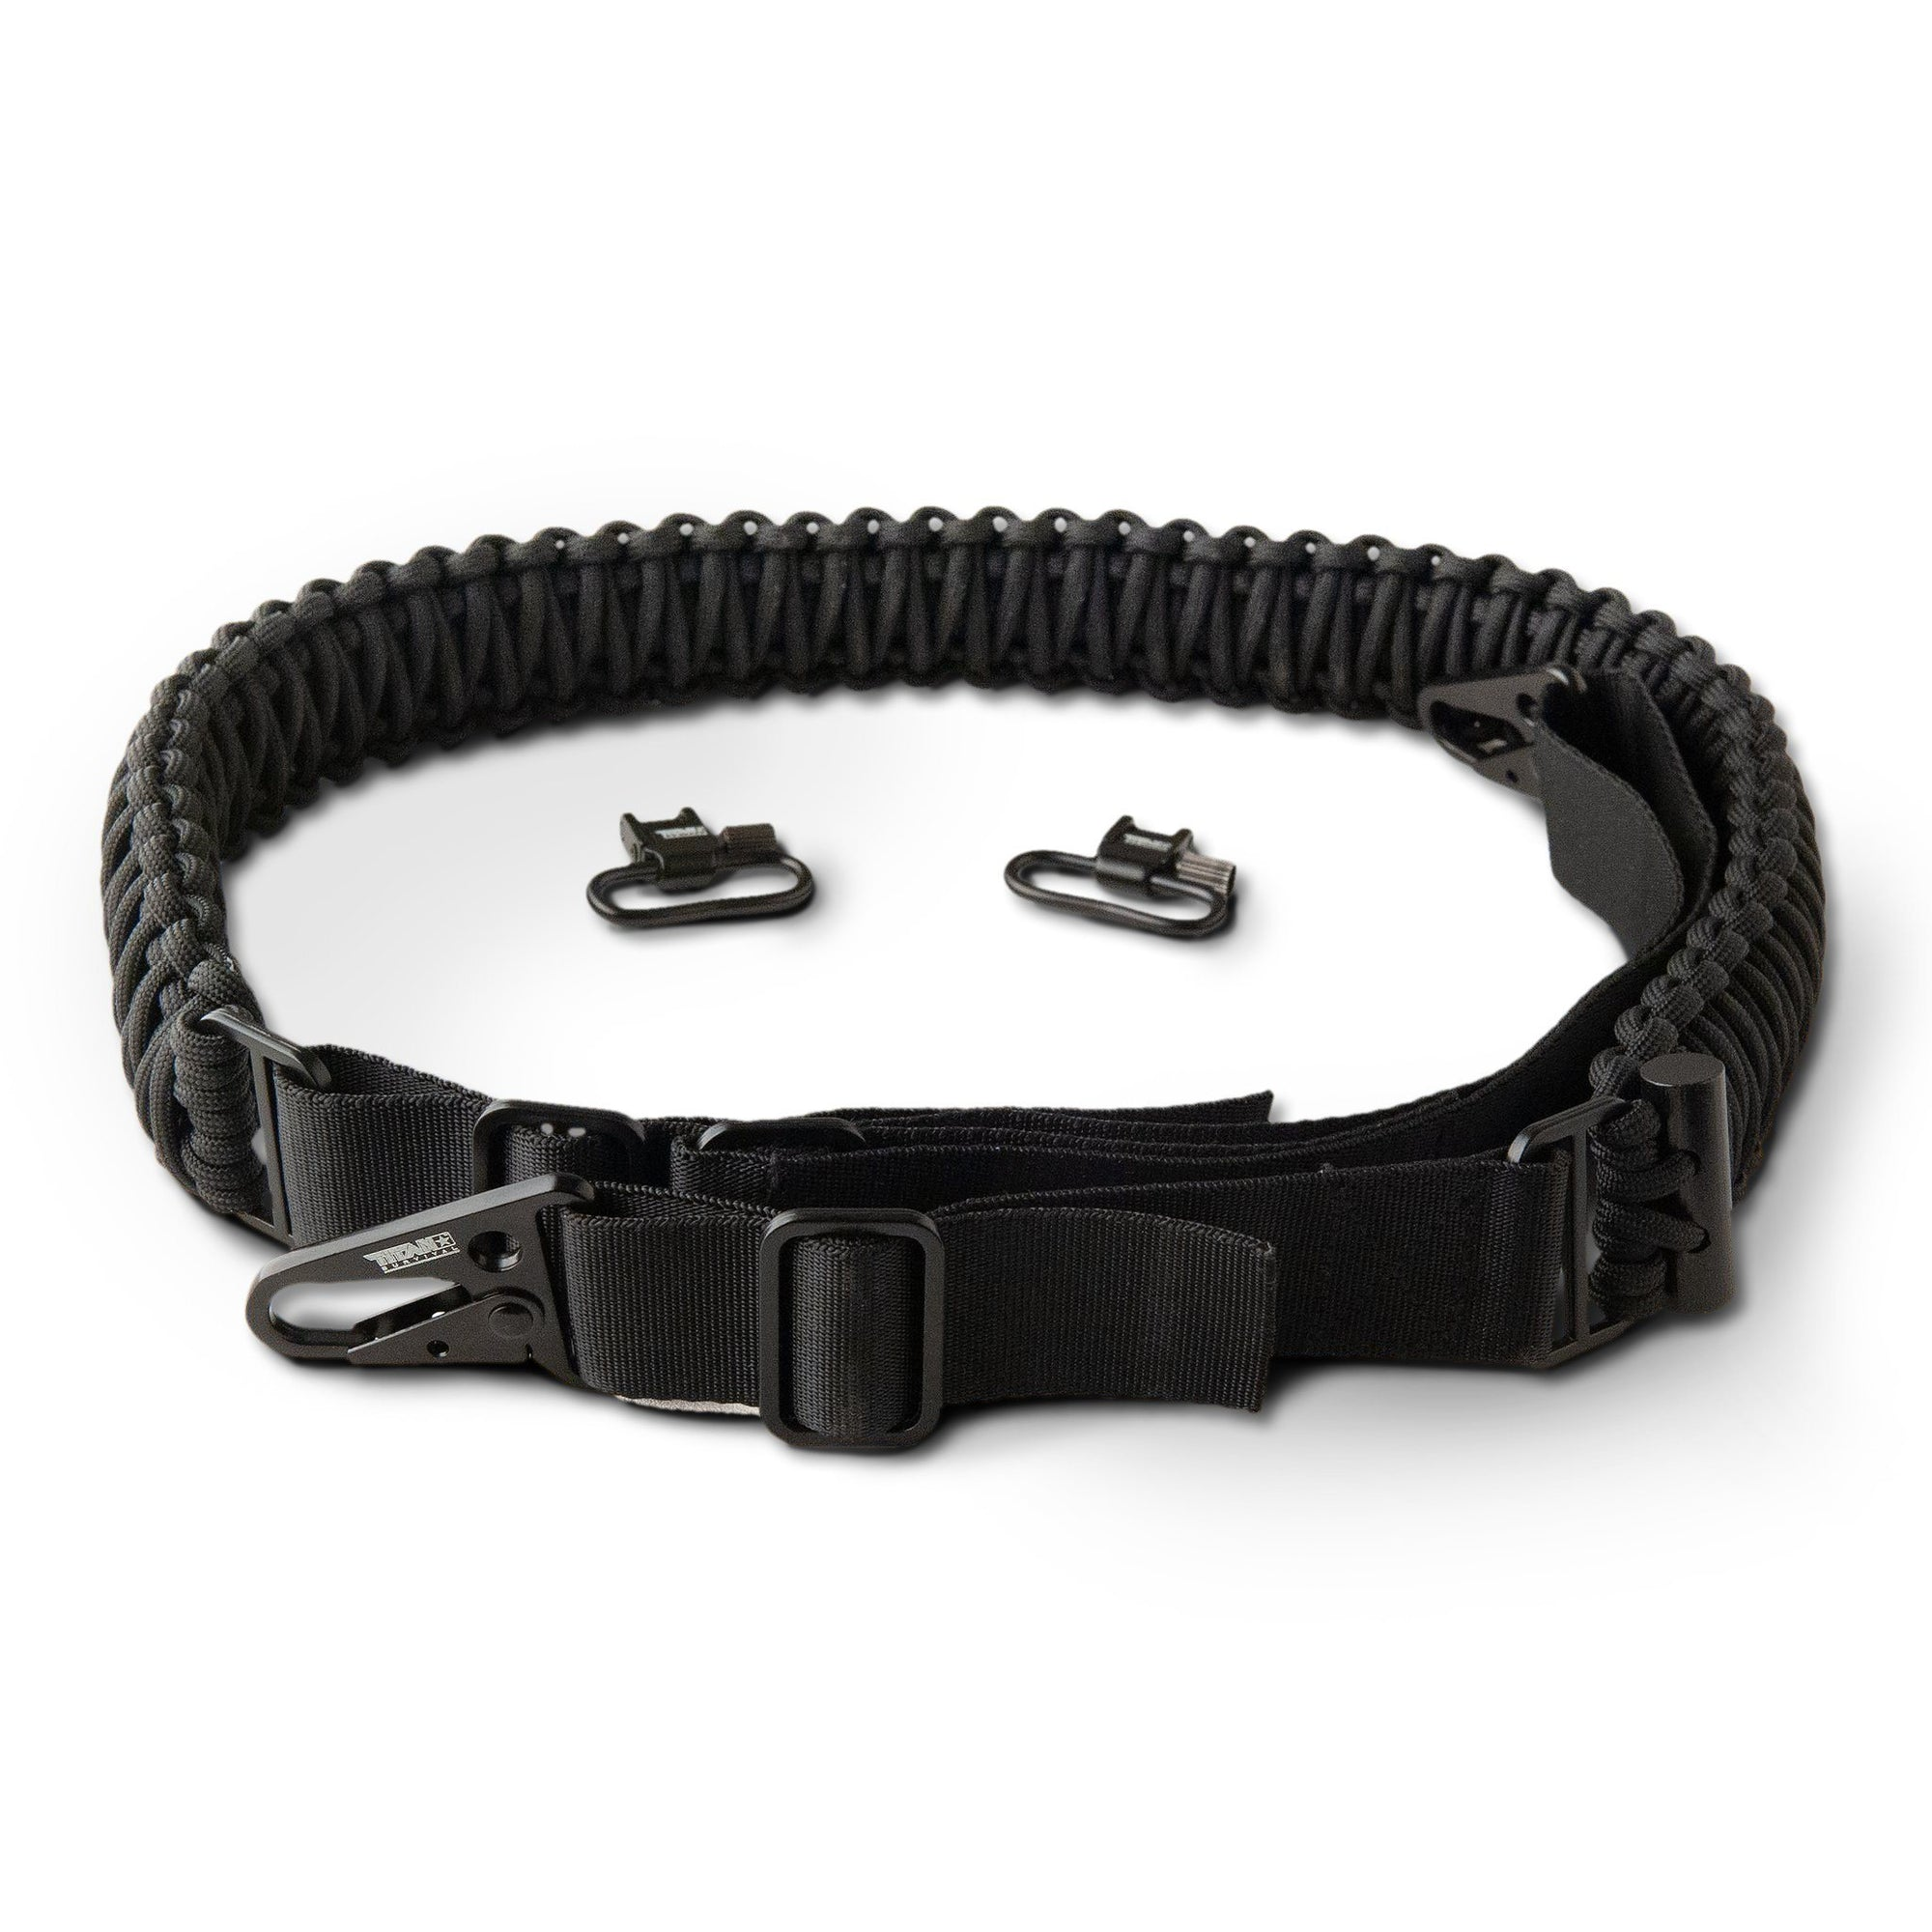 SurvivorCord Weapons' Sling Accessories TITAN Survival